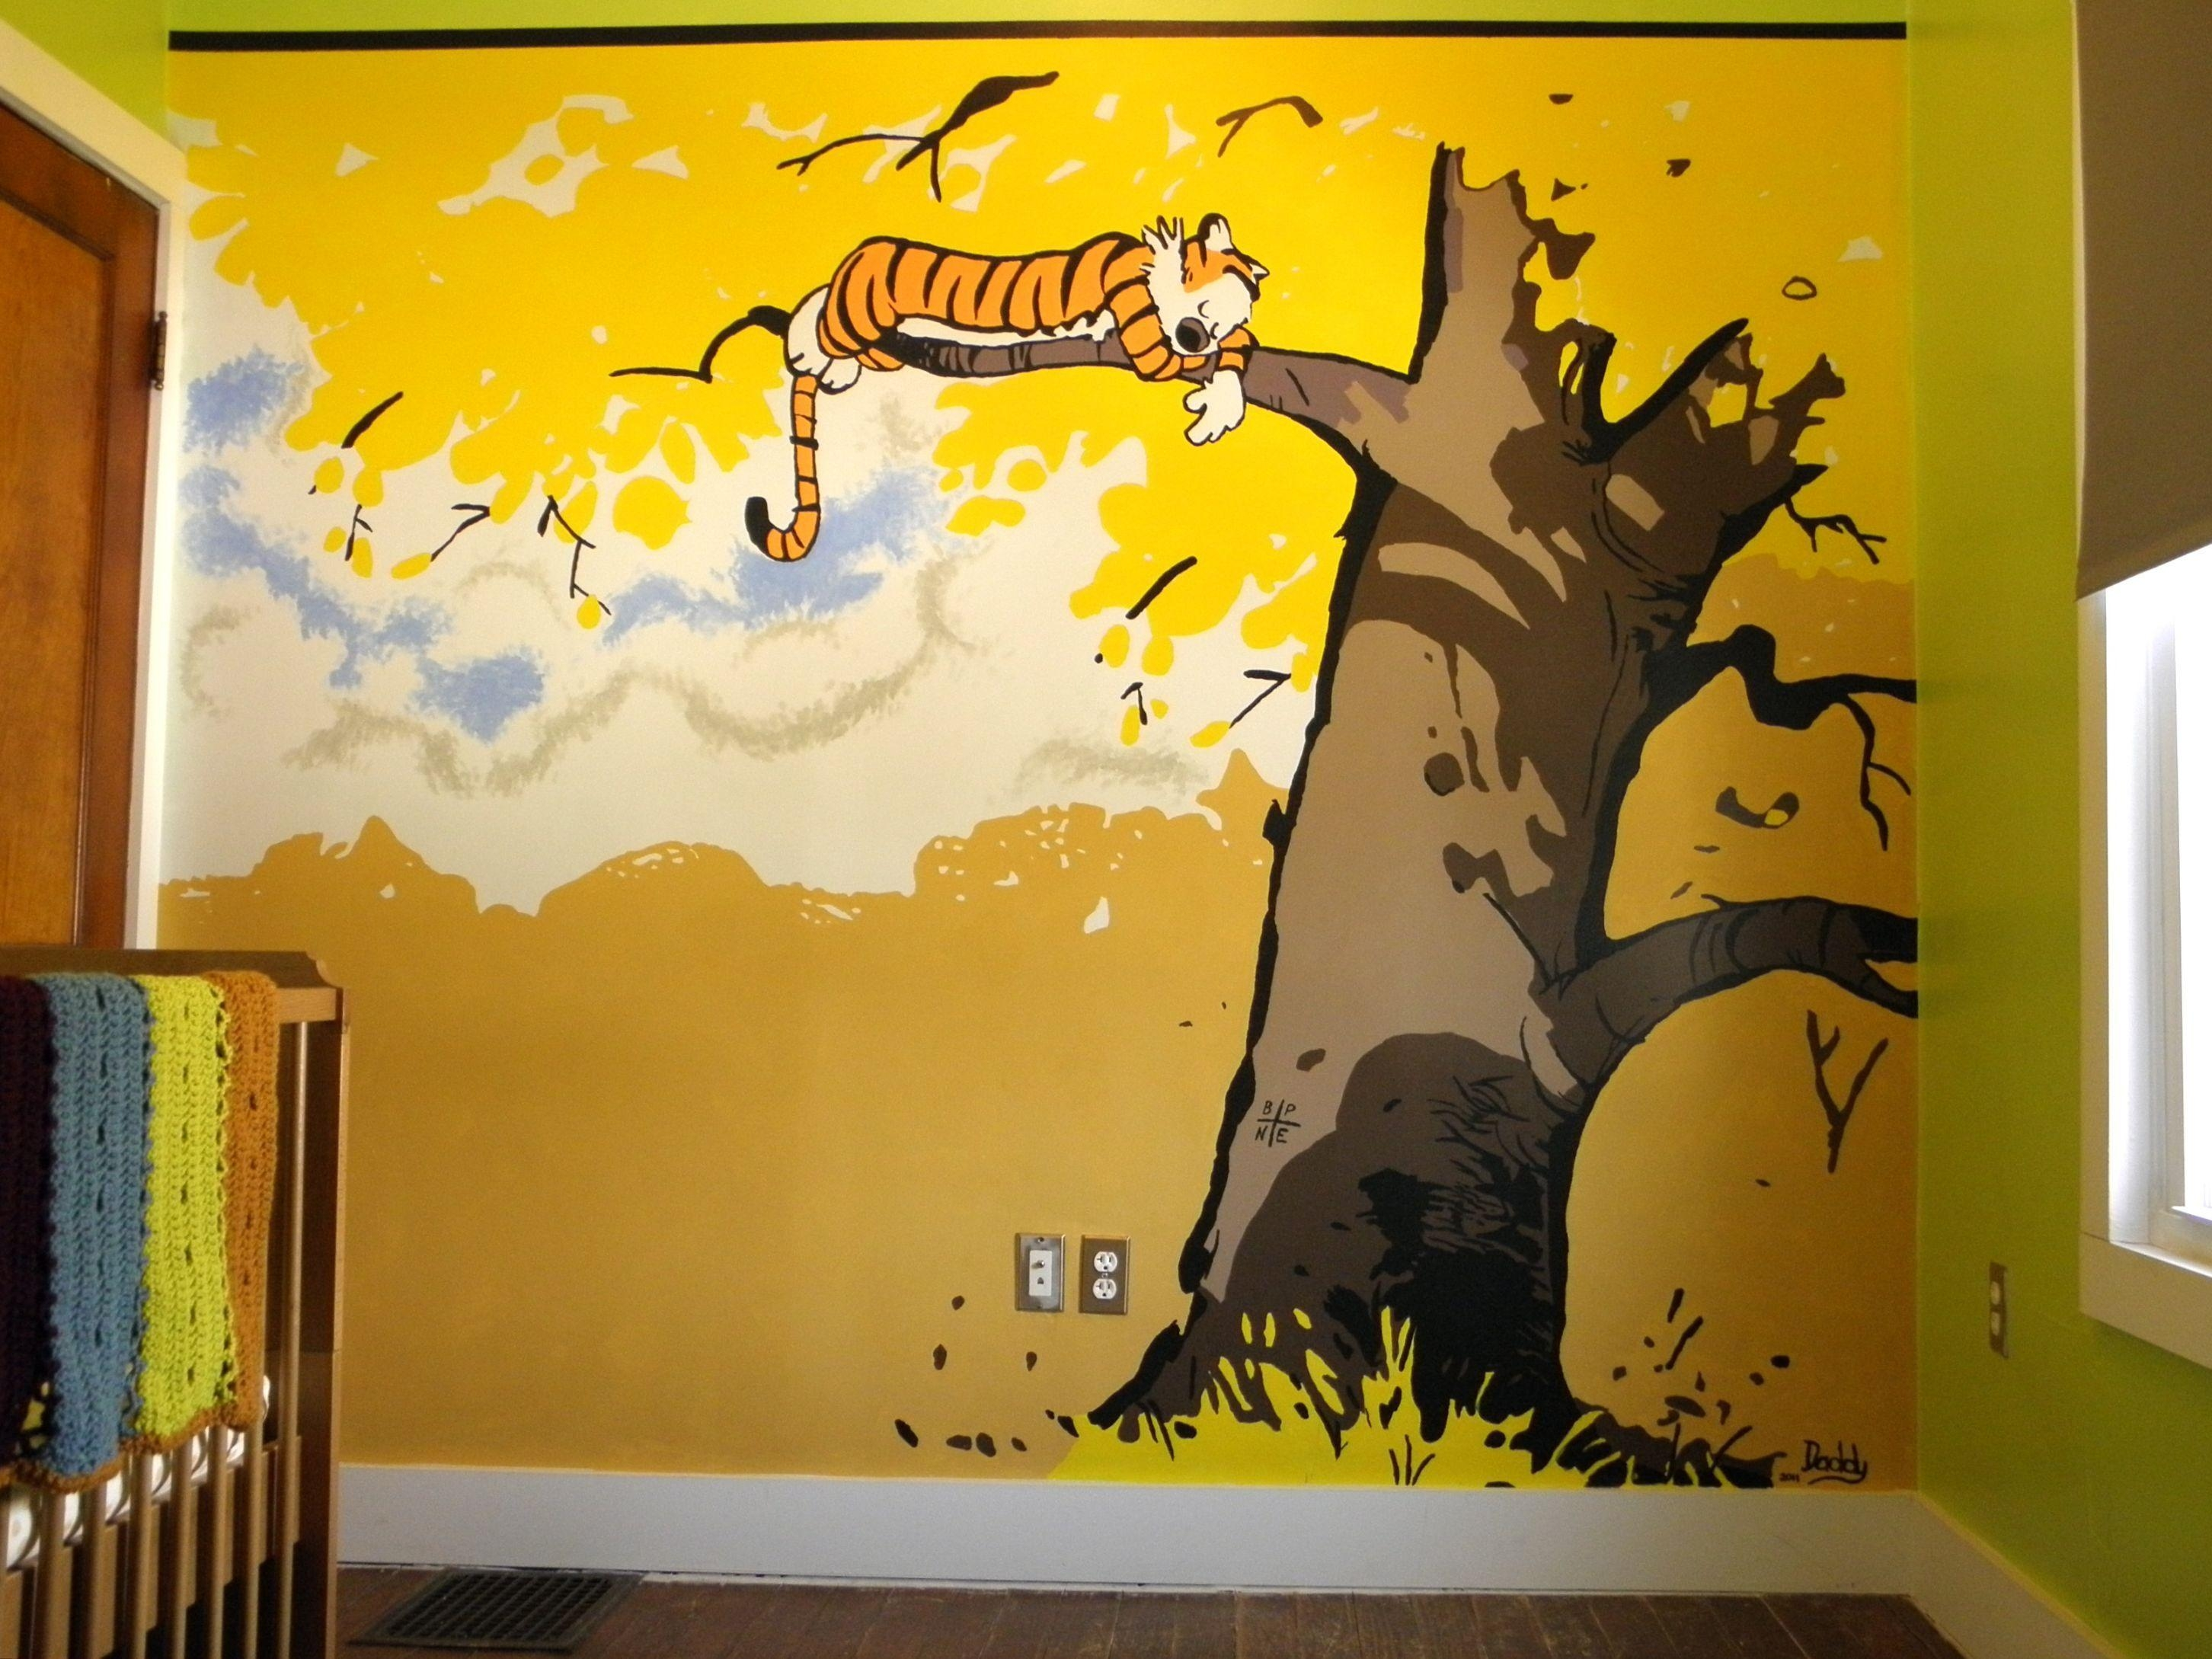 Fantastic Calvin And Hobbes Wall Art Ensign - The Wall Art ...